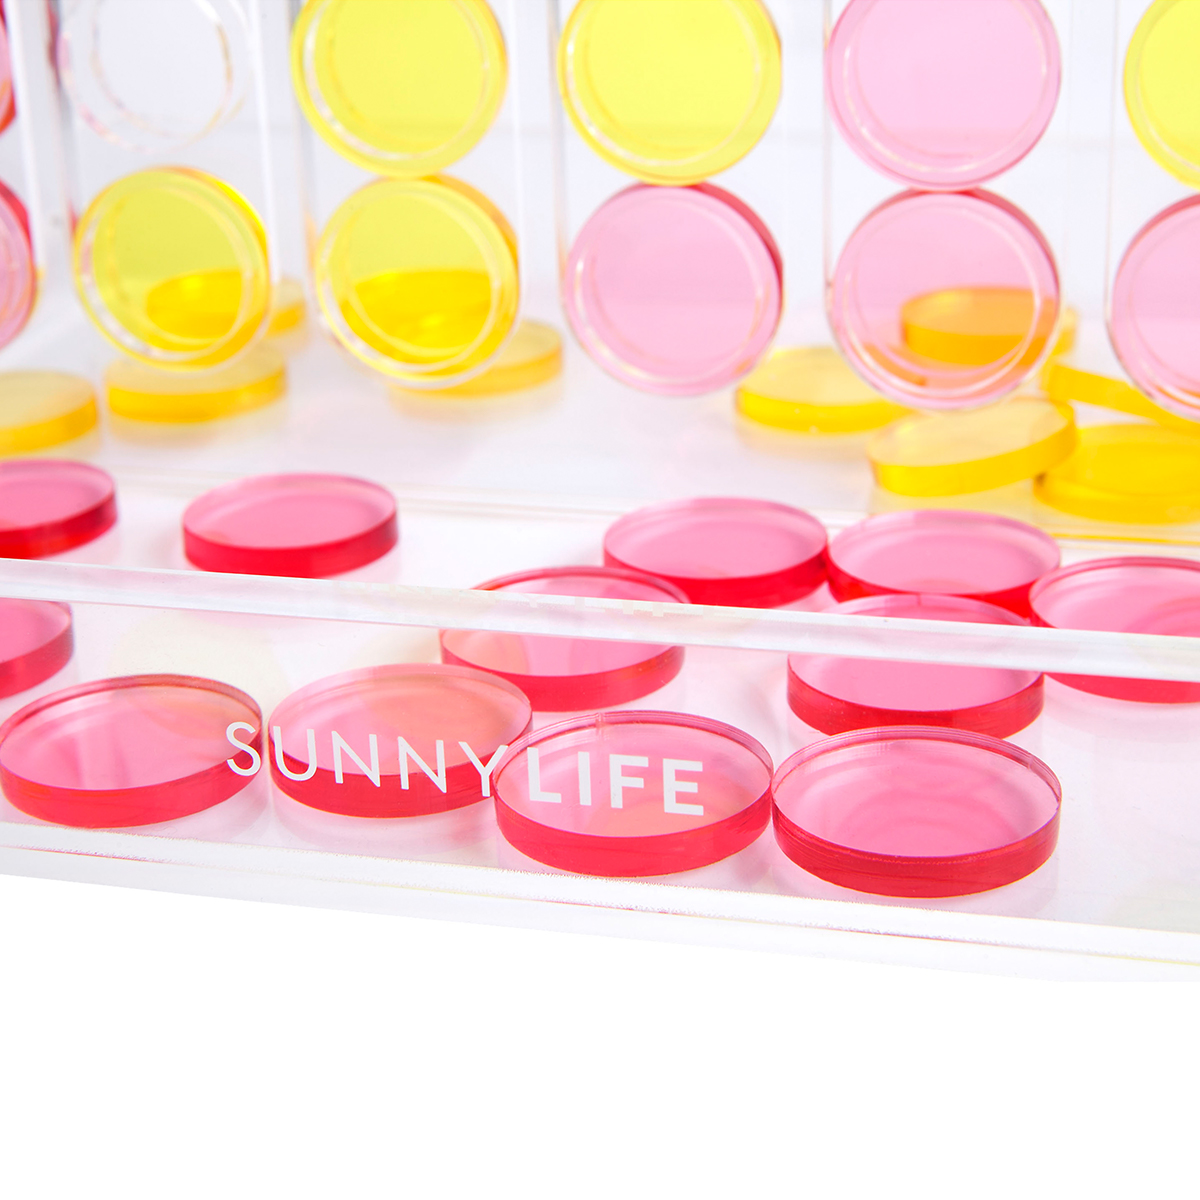 Sunnylife Lucite 4 In A Row Super Fly Thetot